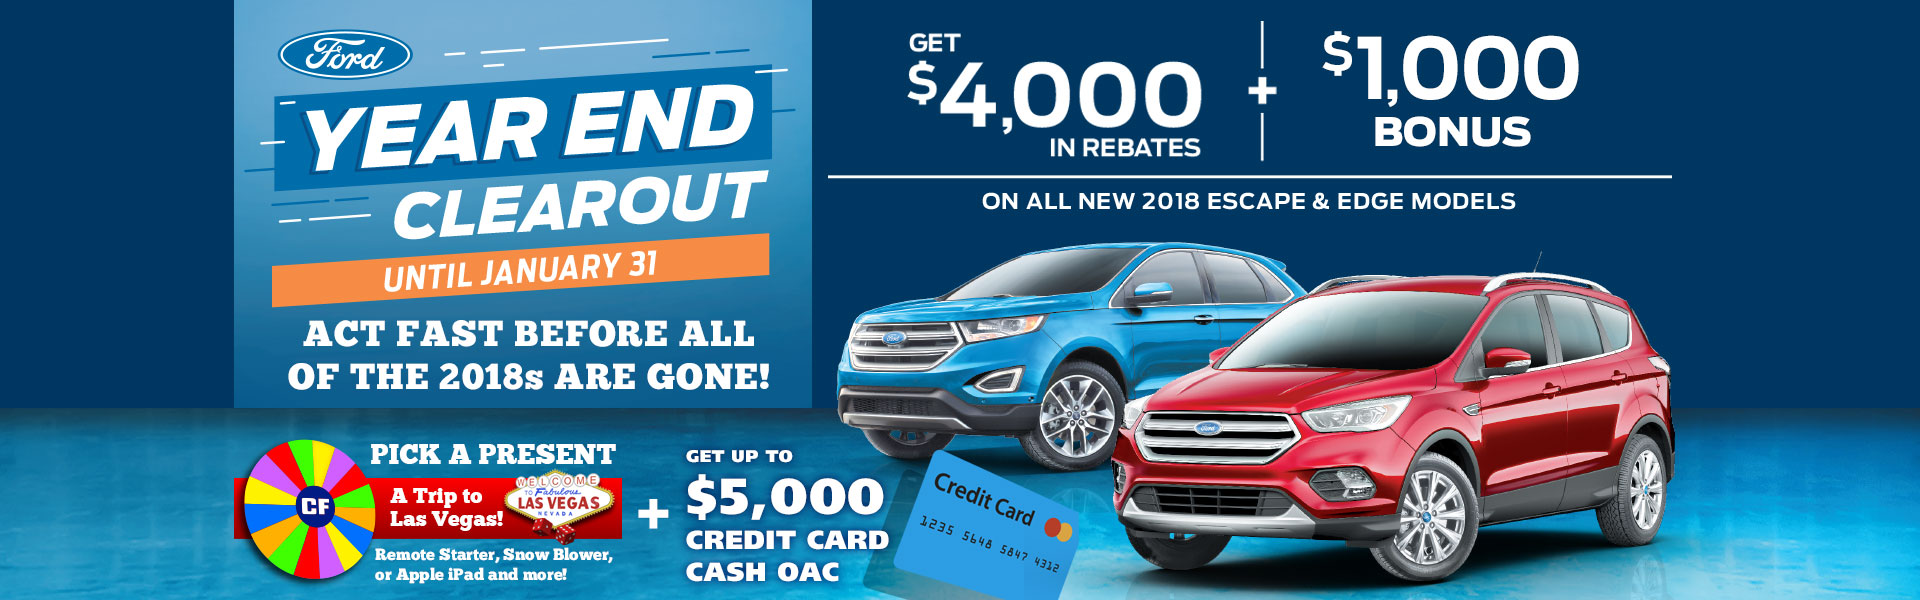 Edmonton Ford Year End Clearout Event SUV Sales